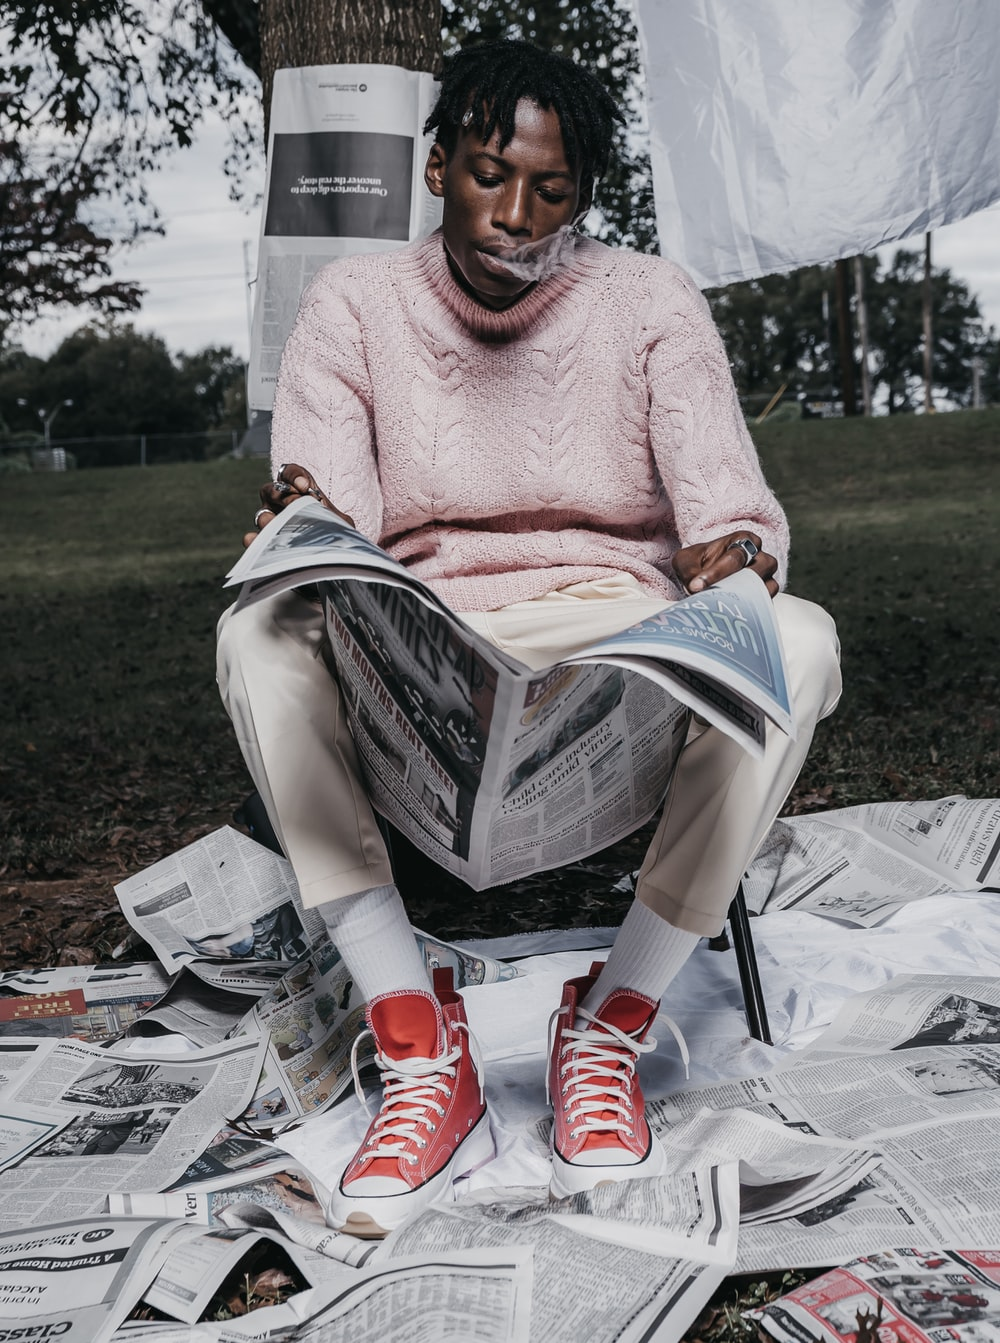 woman in pink knit sweater and white pants sitting on white plastic chair